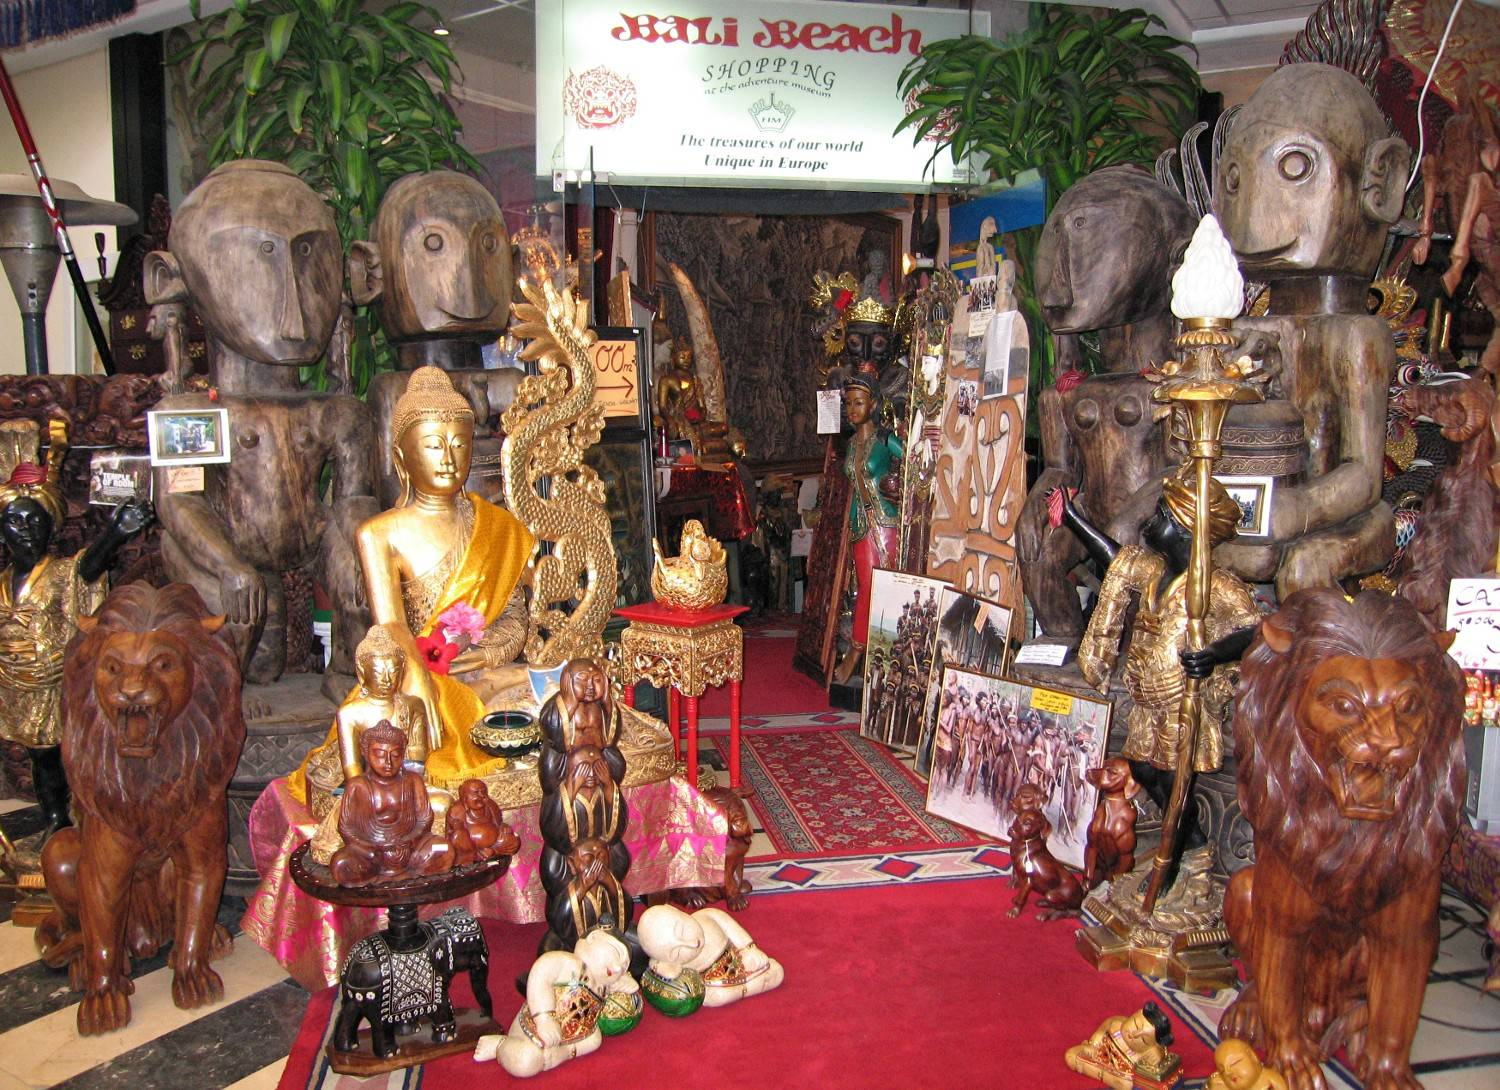 entrance of Bali Beach Museum Shop